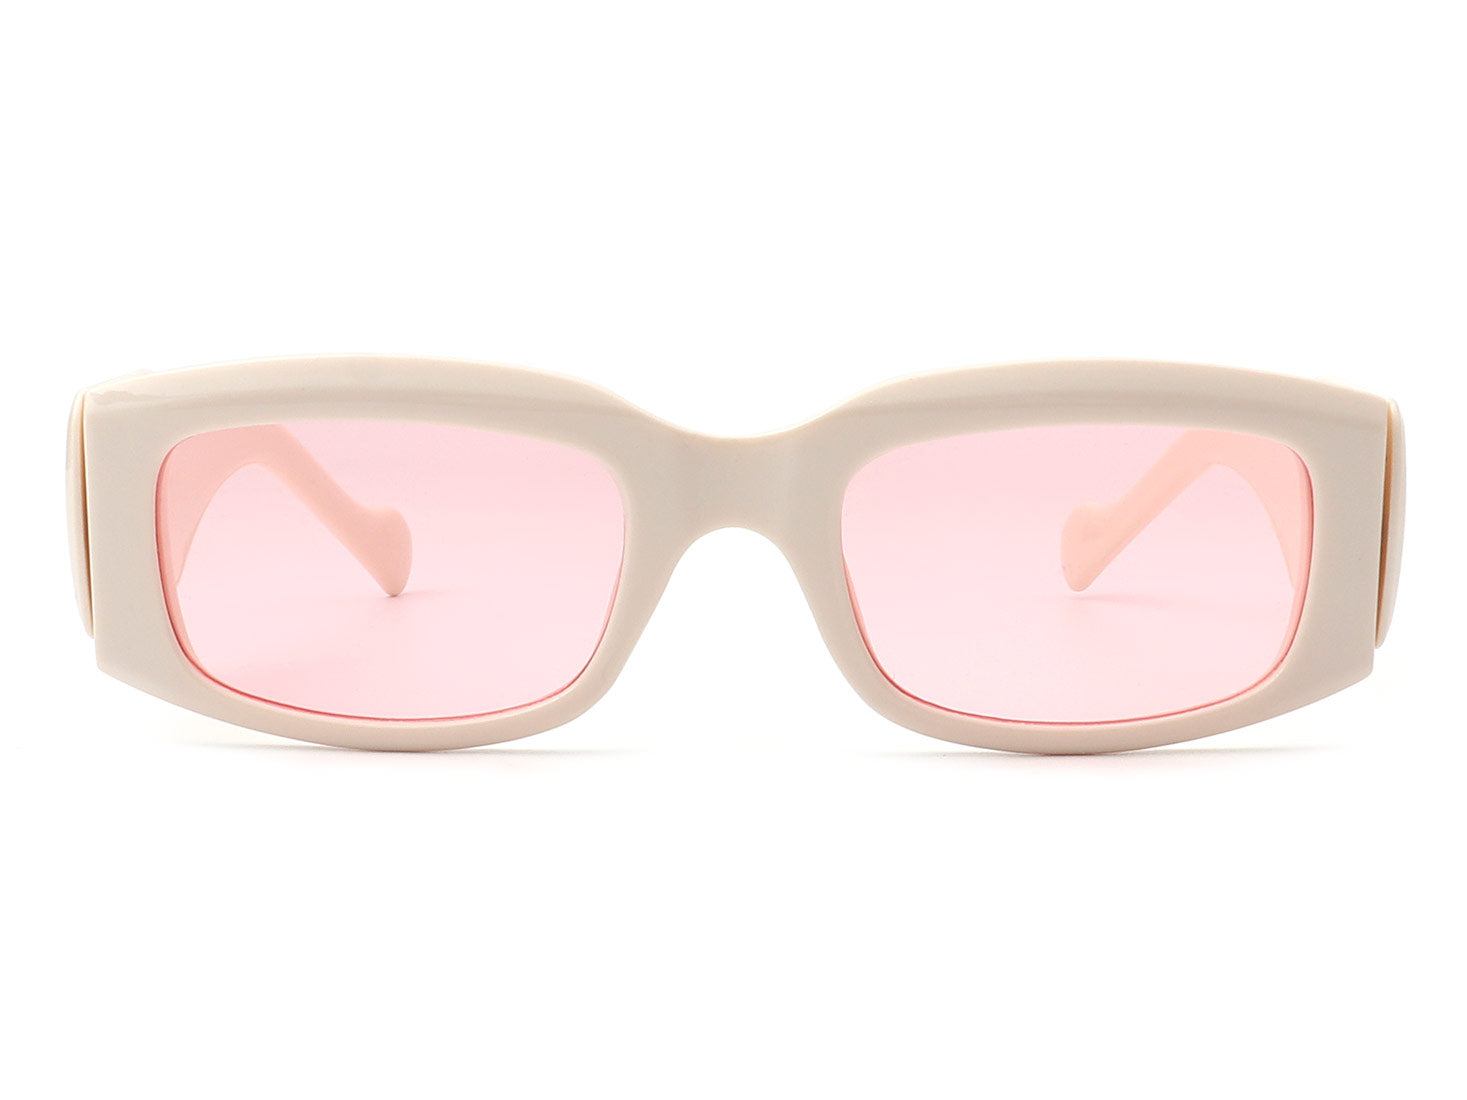 S1166 - Retro Rectangle Bold Vintage Thick Frame Fashion Sunglasses